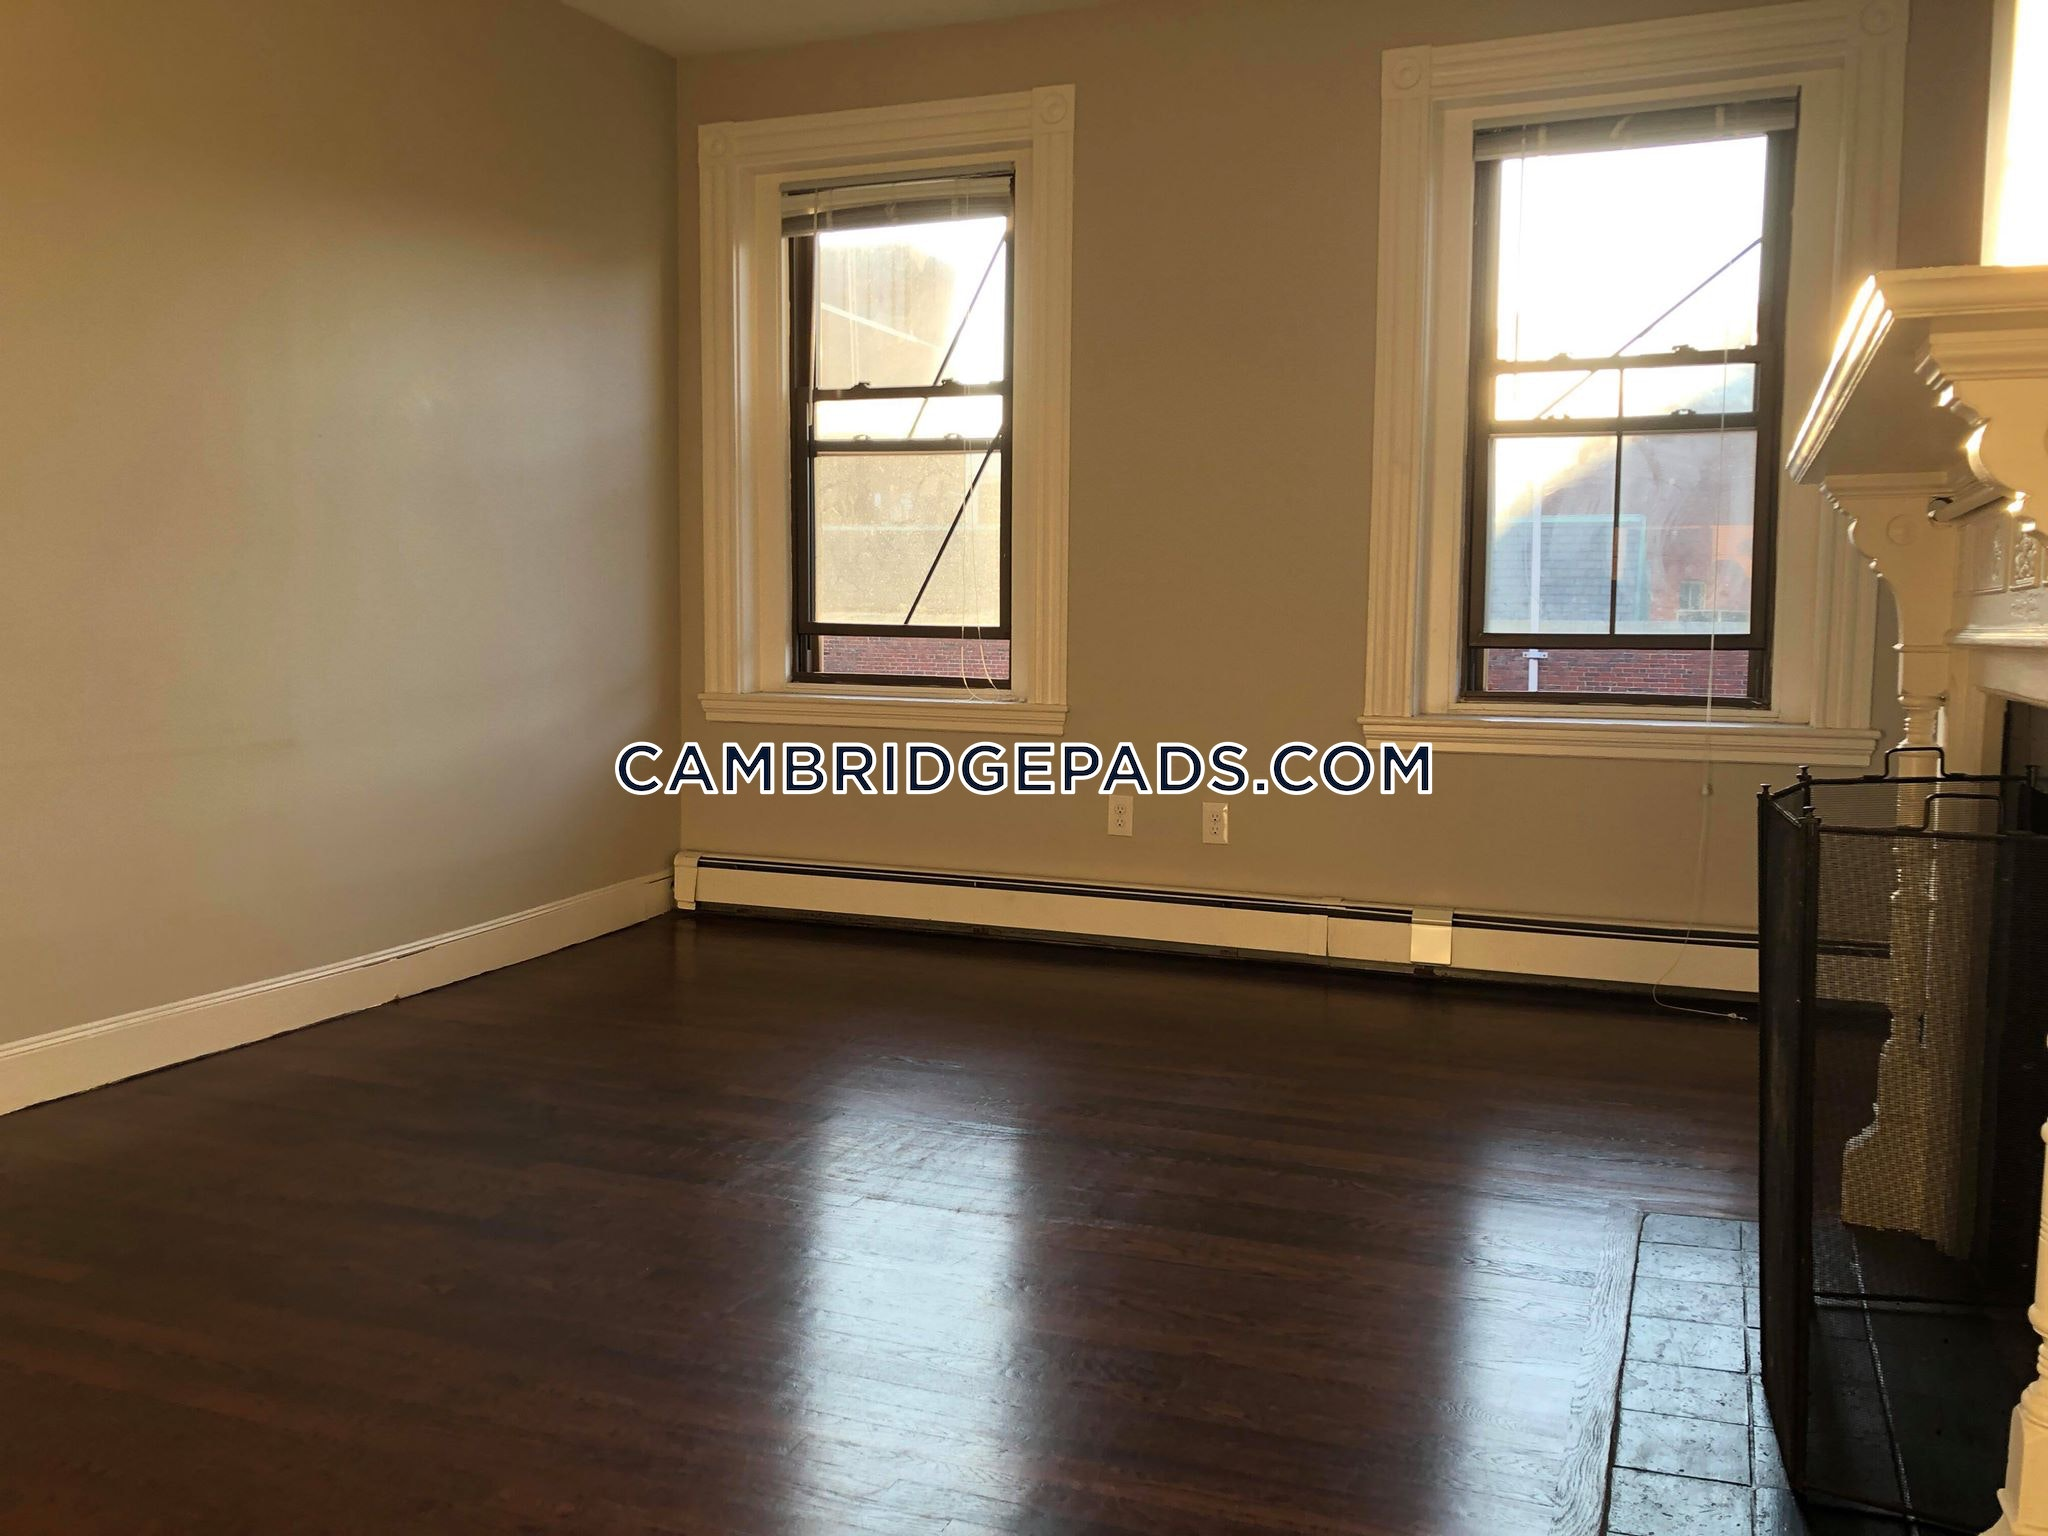 CAMBRIDGE - HARVARD SQUARE - $3,195